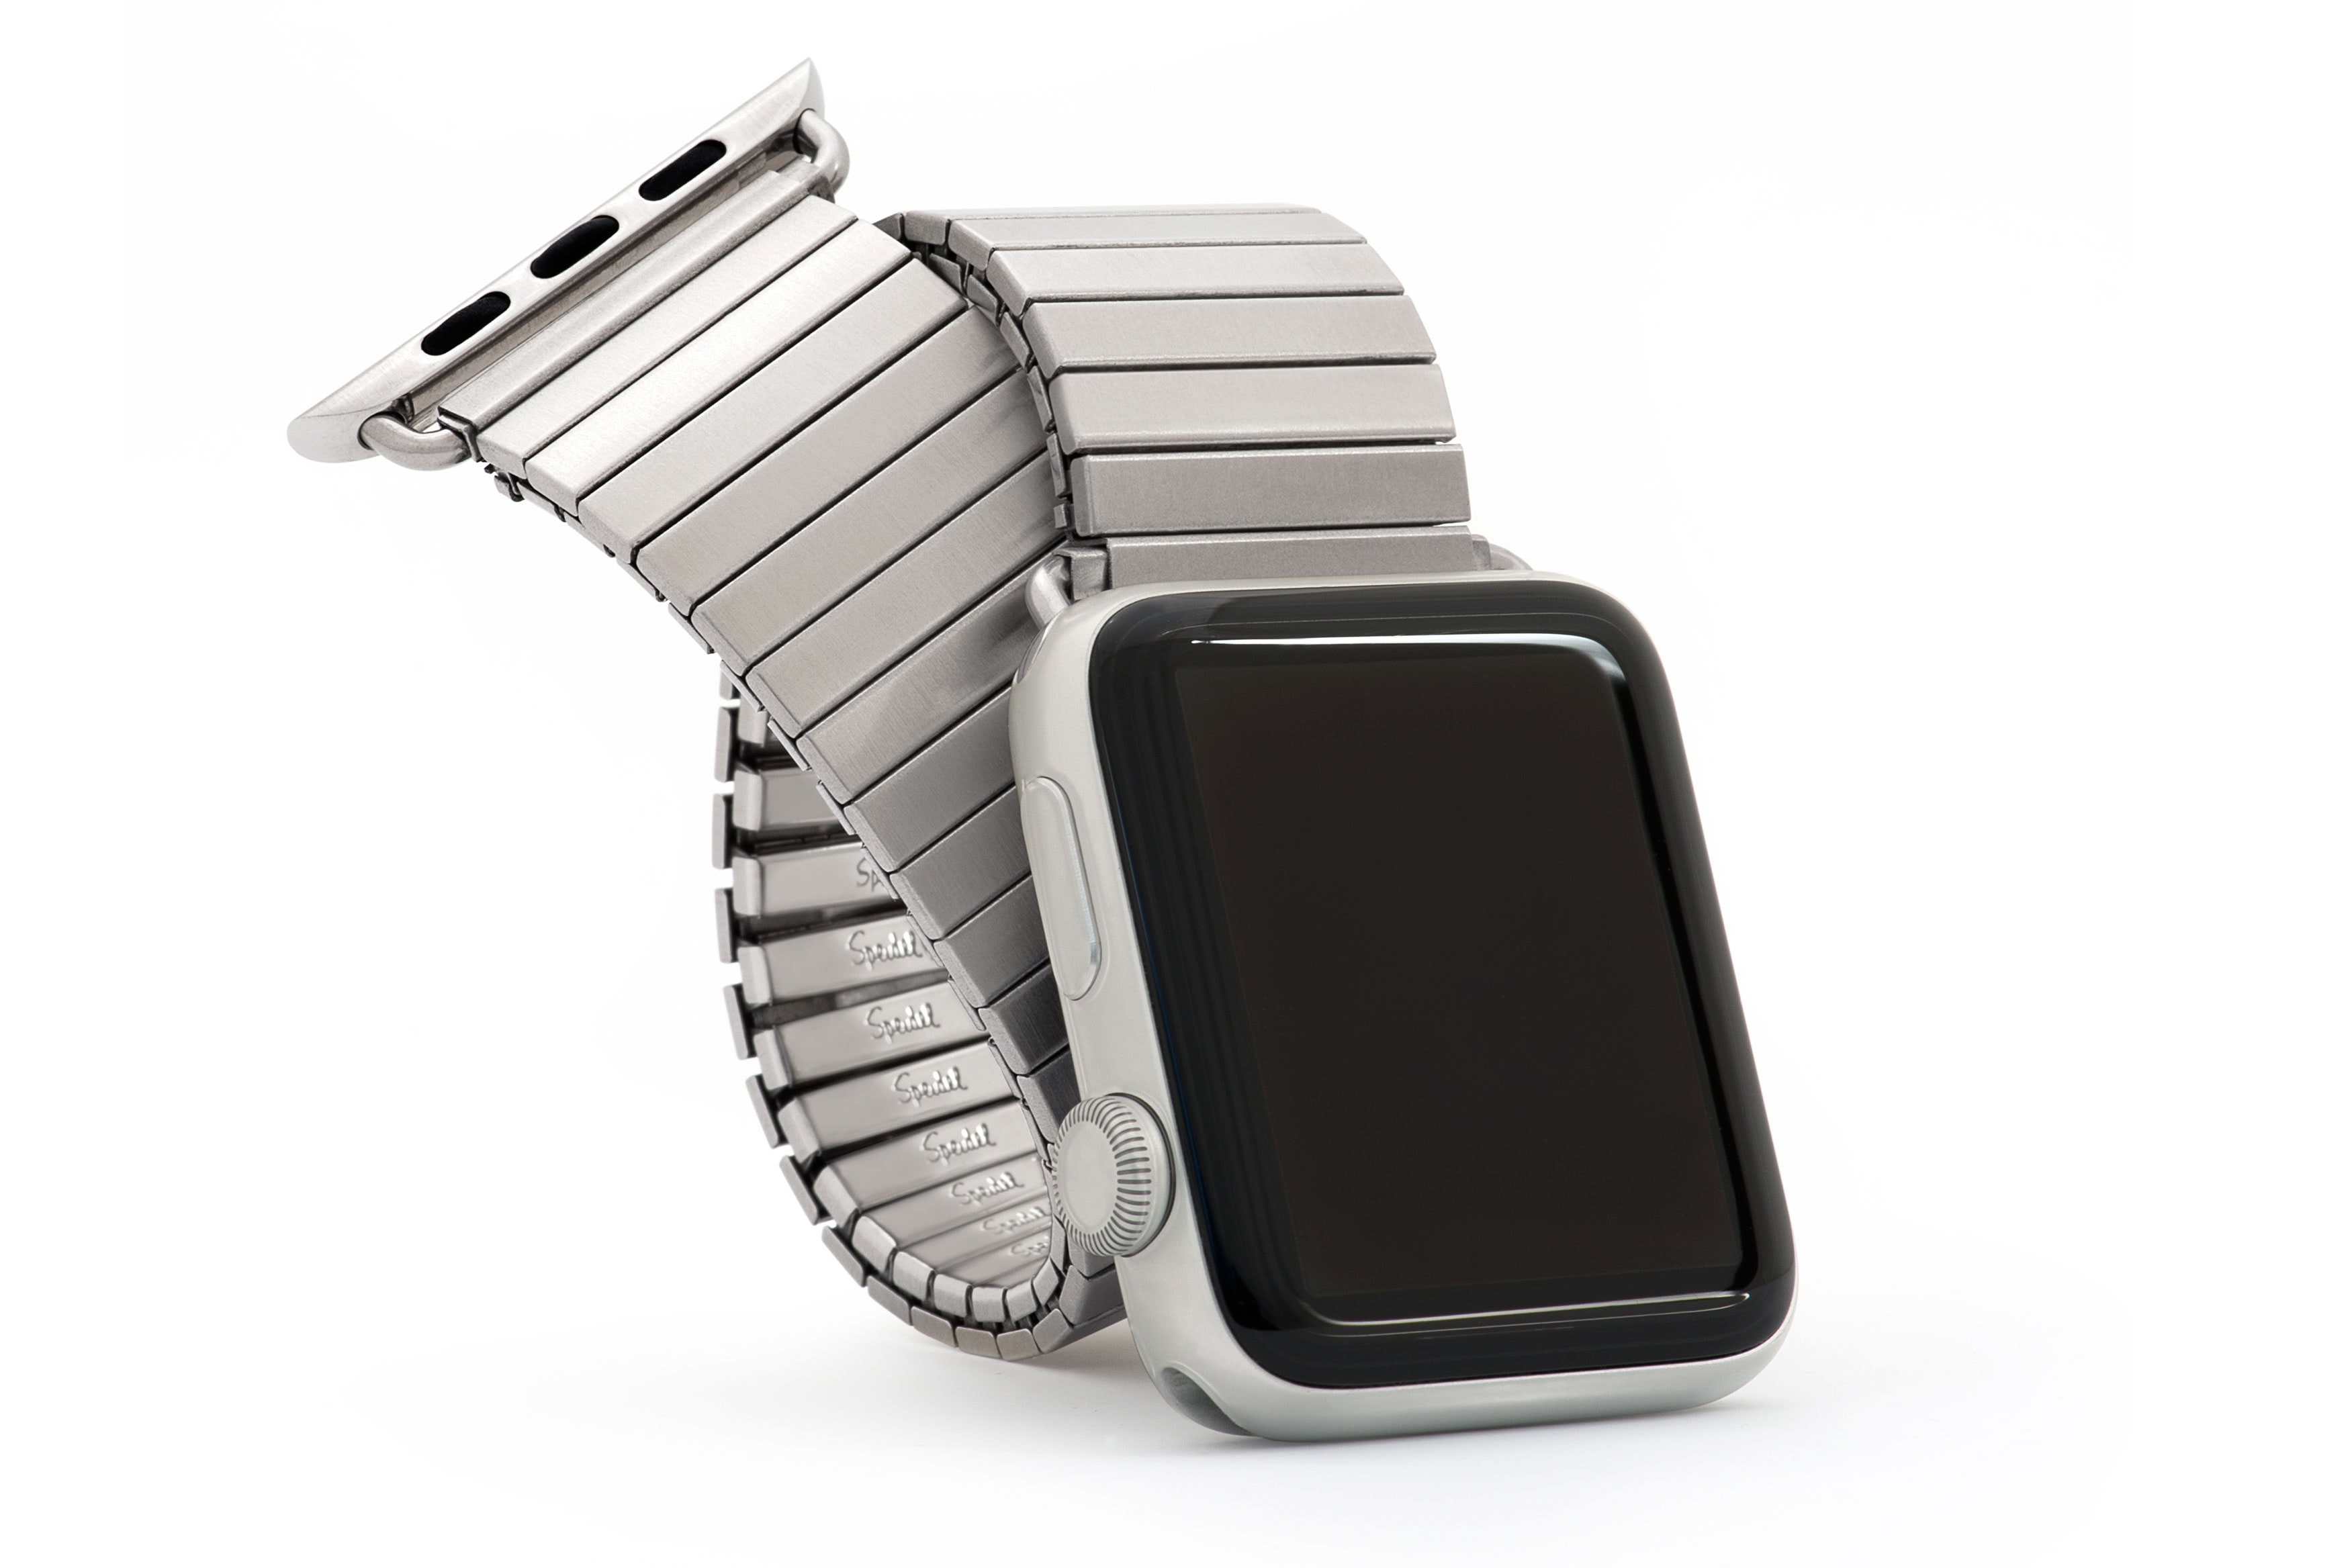 apple watch speidel twist-o-flex bracelet Introducing: The Speidel Twist-O-Flex Bracelet For Apple Watch Introducing: The Speidel Twist-O-Flex Bracelet For Apple Watch twist 04